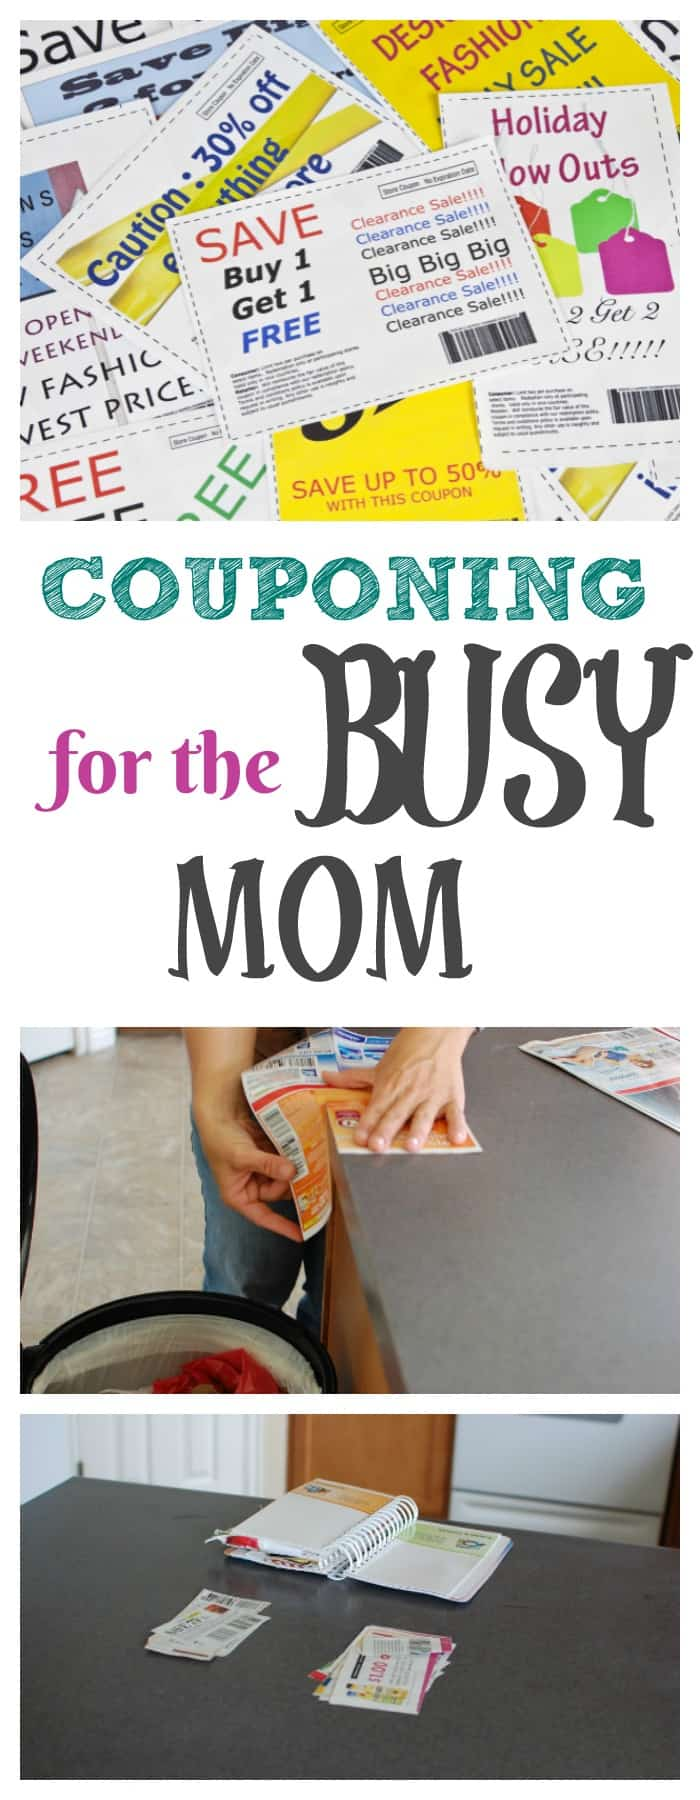 coupons for the busy mom